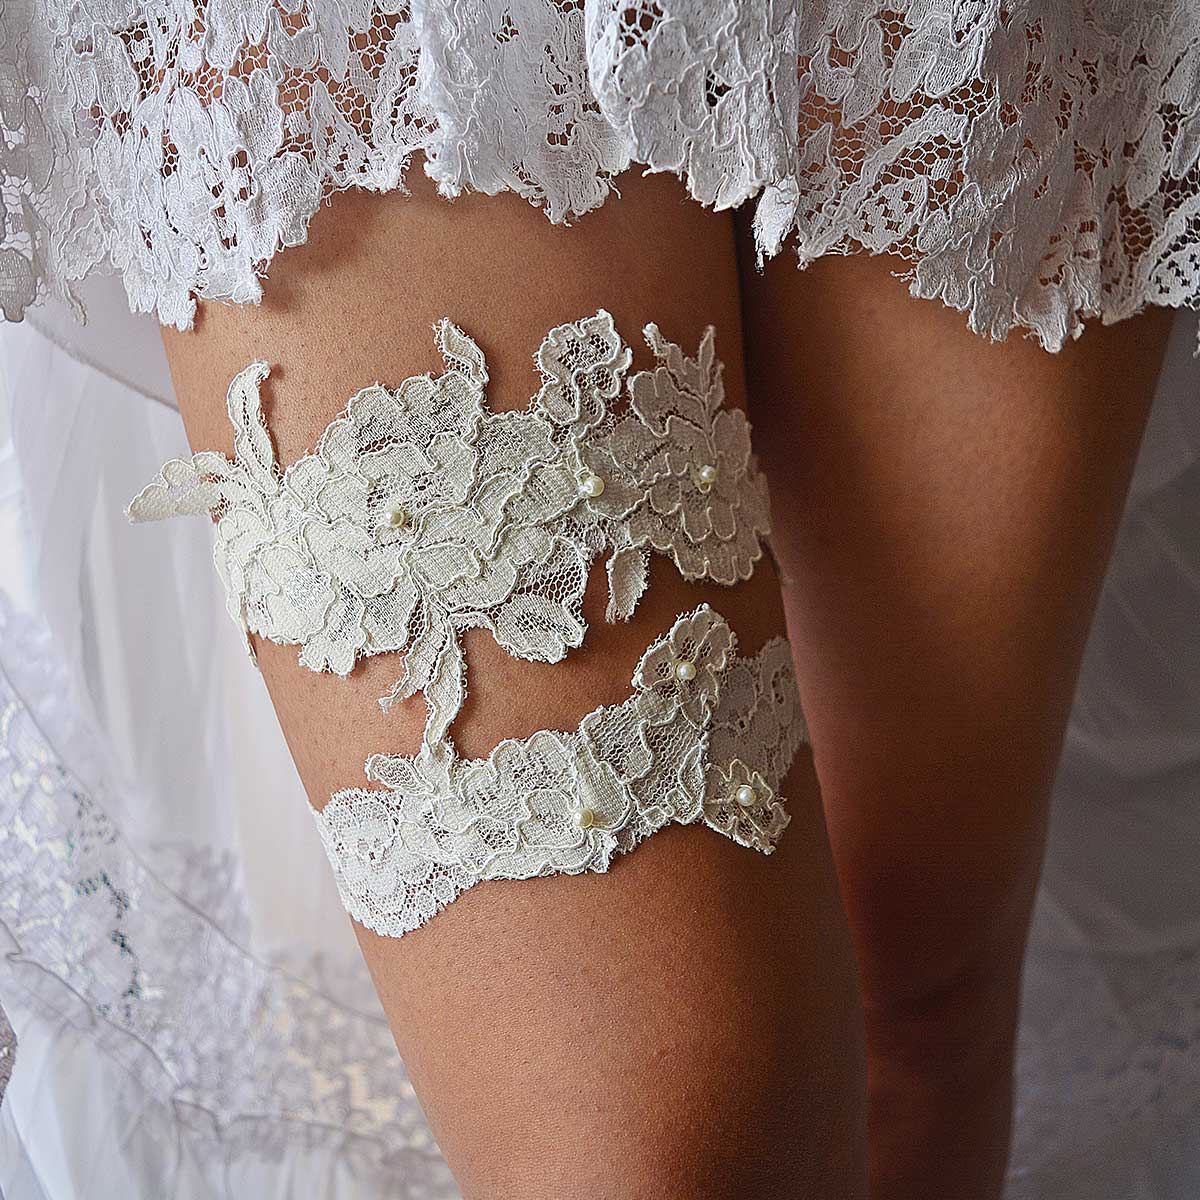 Ivory Bridal Garter With Applique Lace And Ivory Pearls - Wedding Garter - SuzannaM Designs